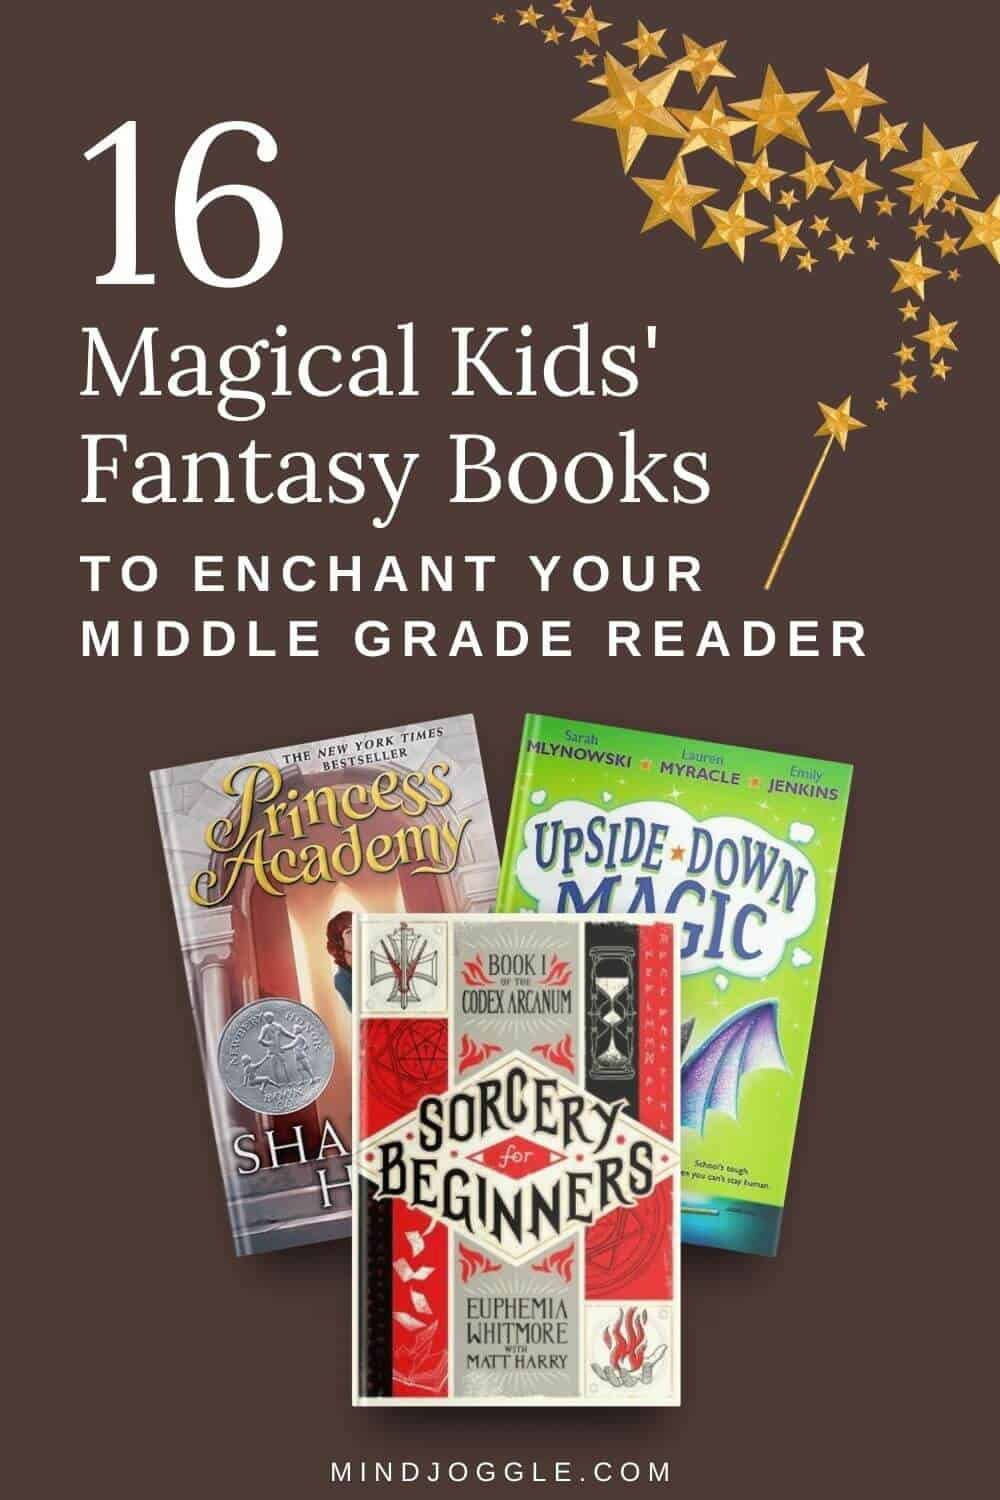 16 Magical Kids' Fantasy Books to Enchant Your Middle Grade Reader